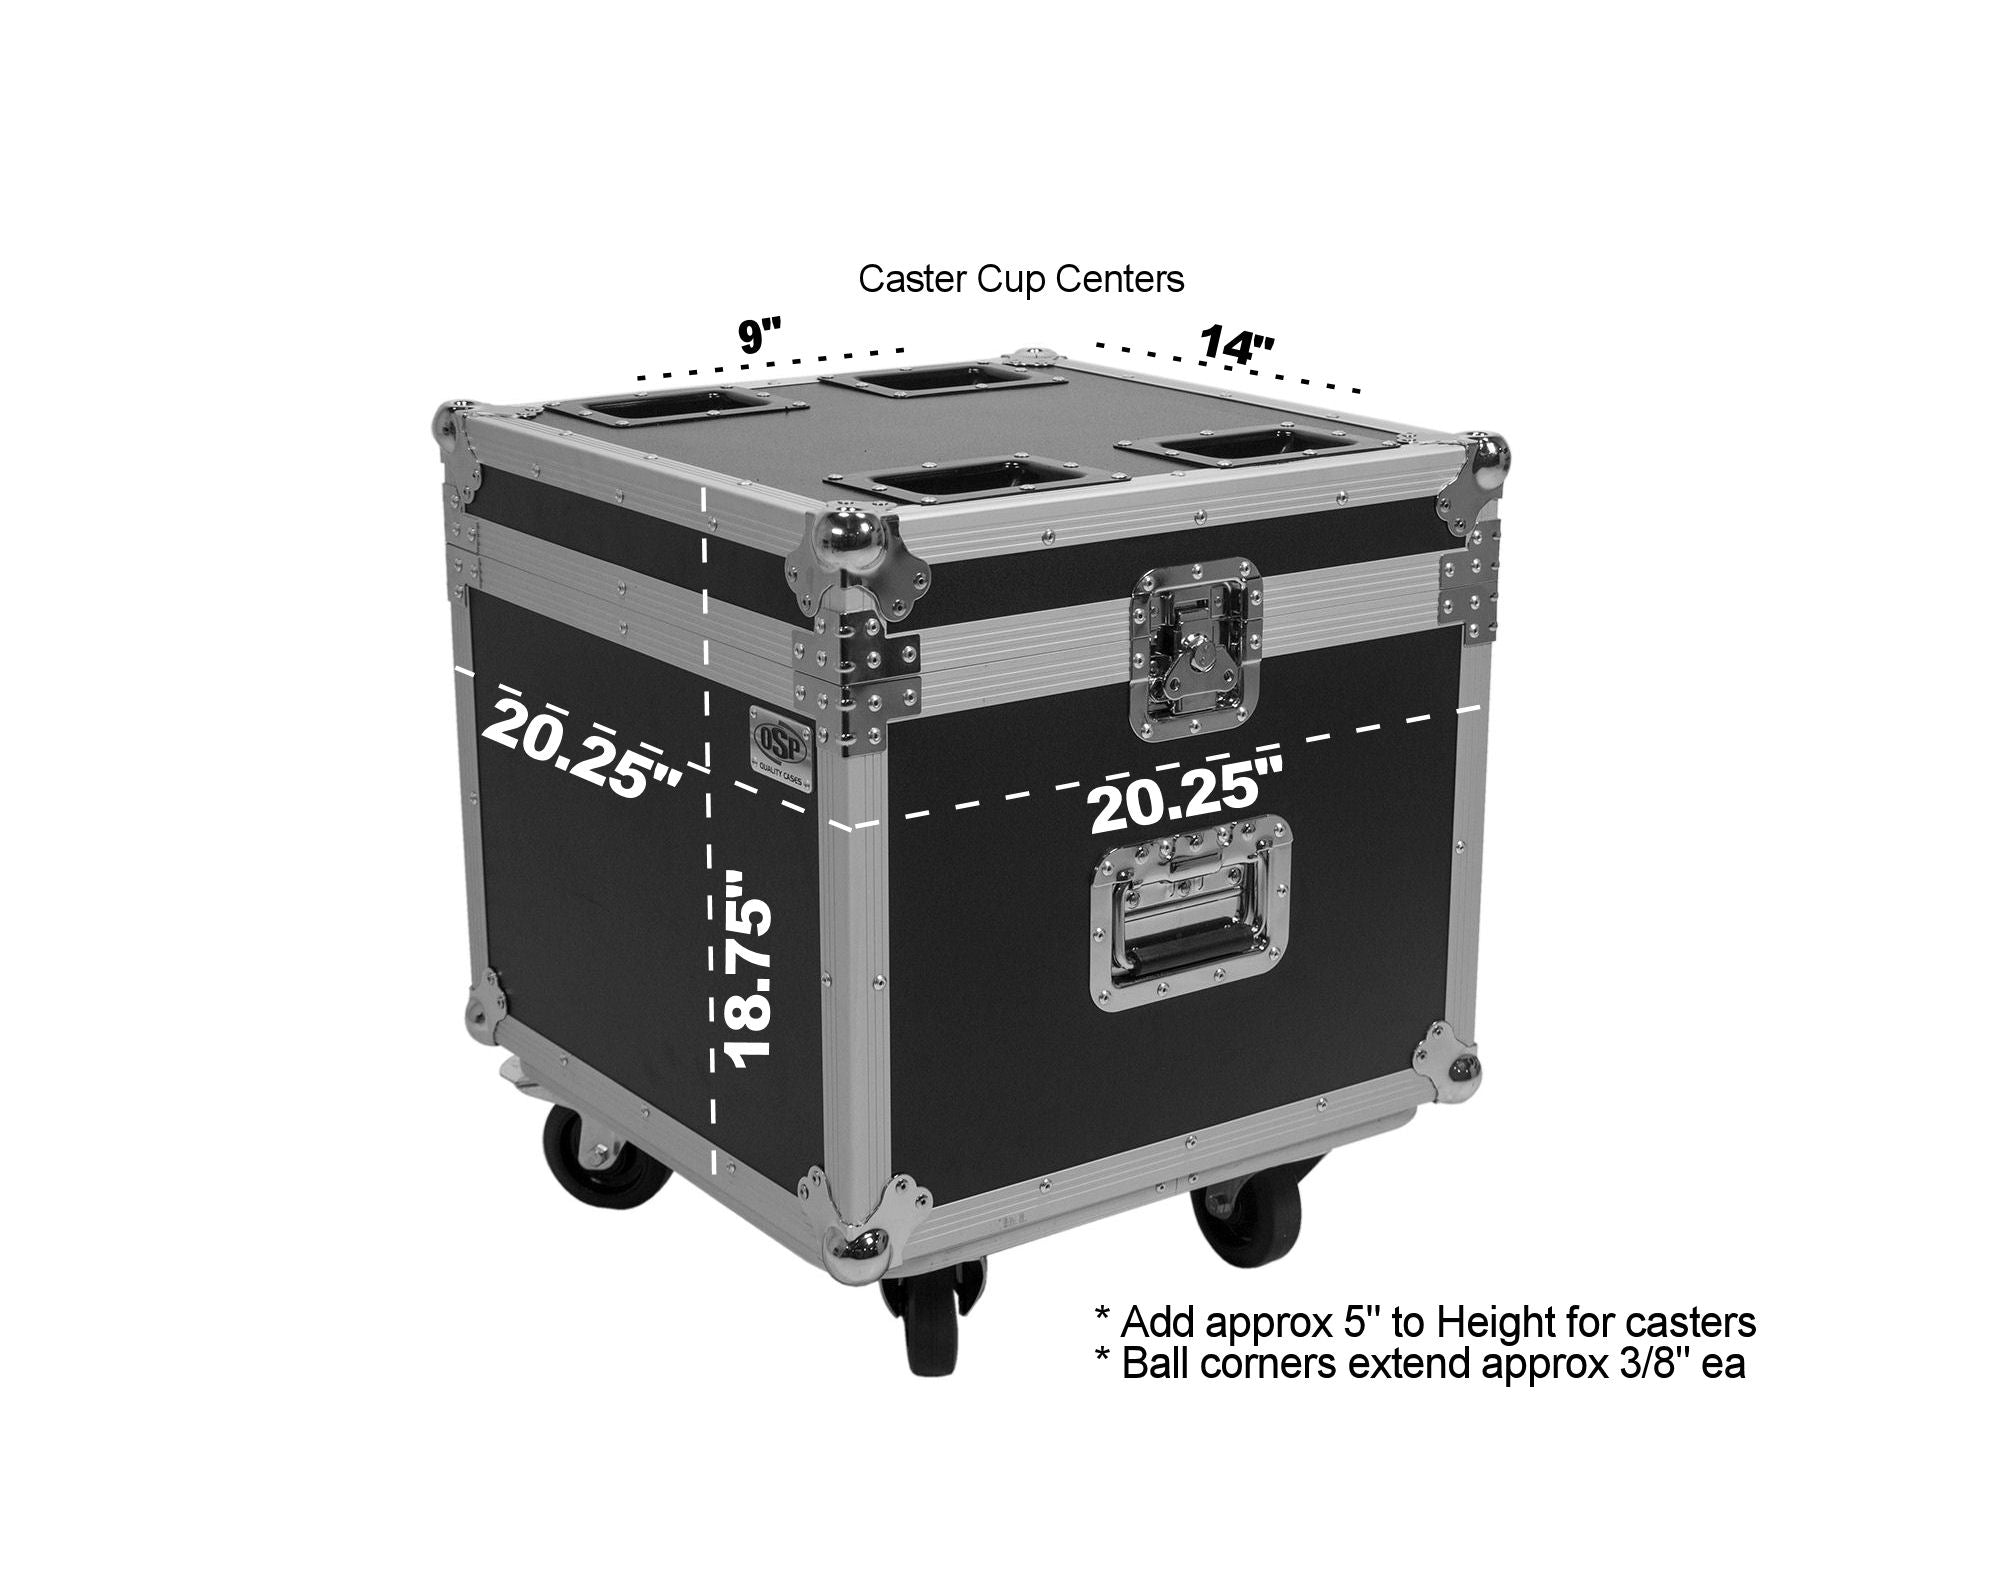 OSP PAR-CASE-4C Universal ATA Flight Case for 4 LED PAR CANS * Upgraded with Casters & Caster Cups *